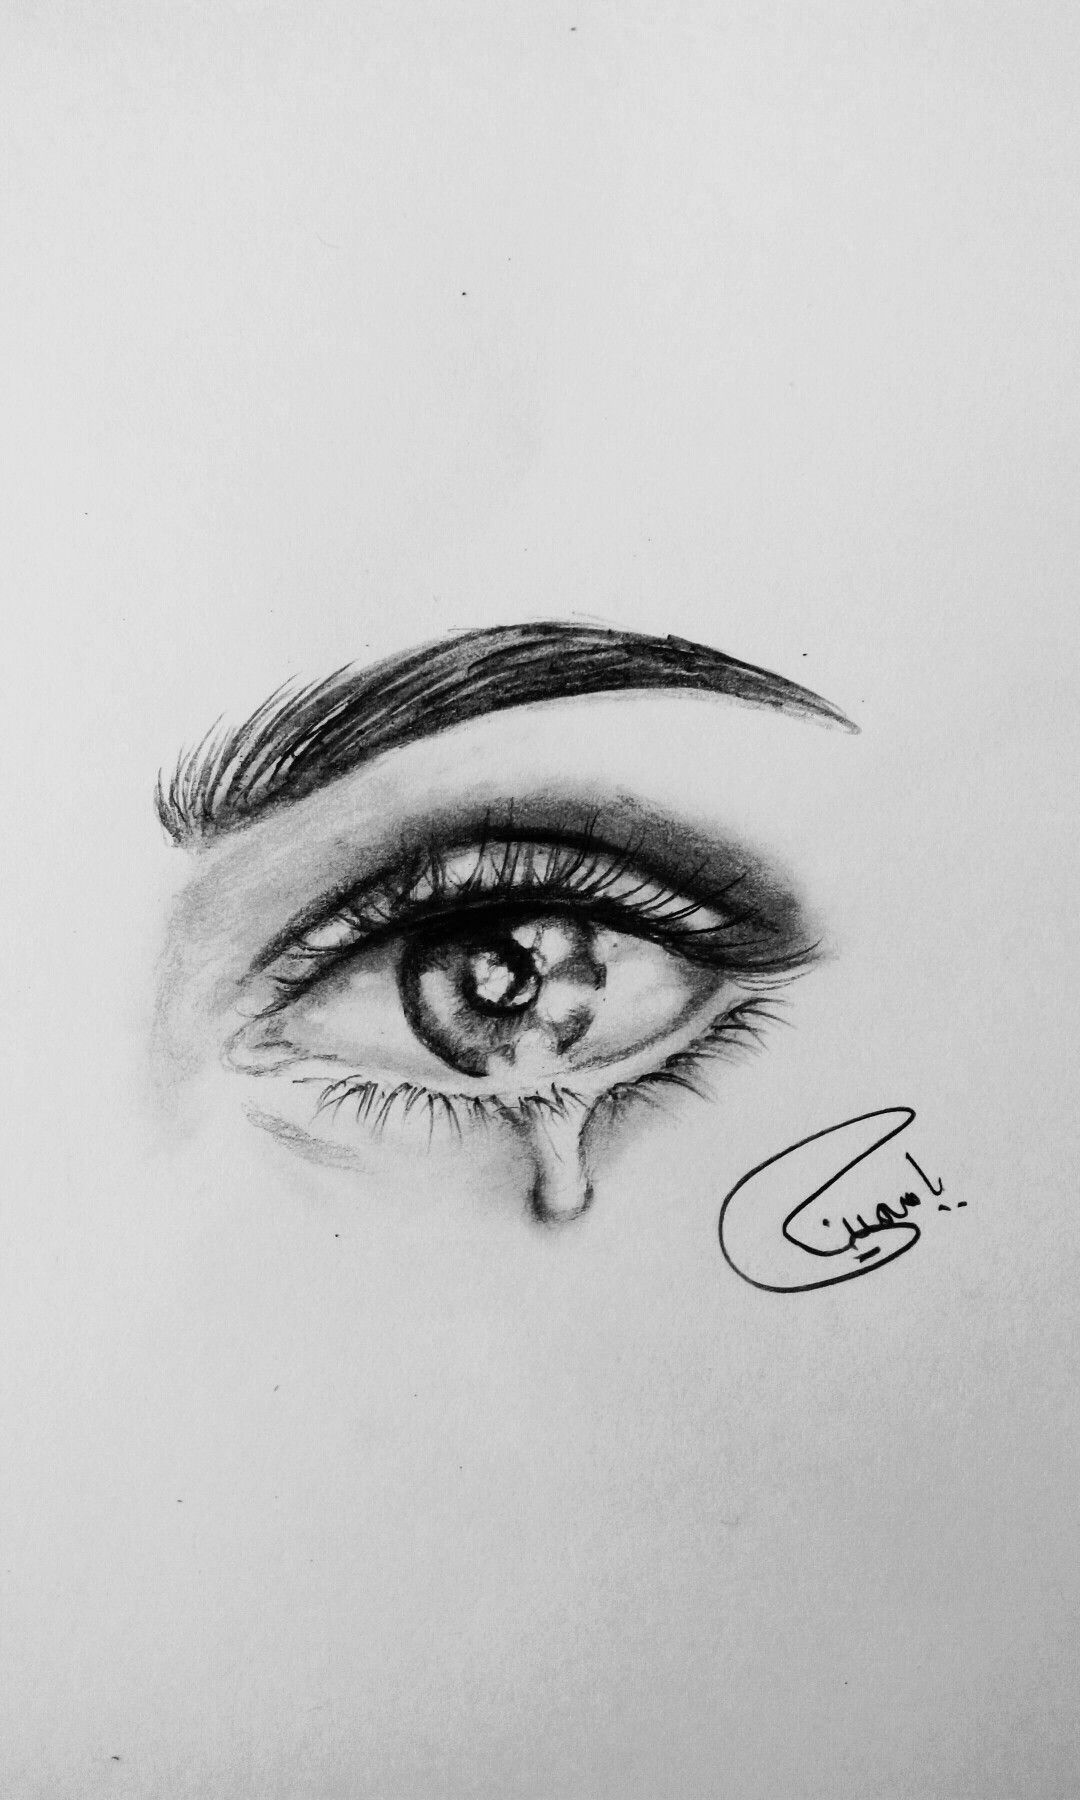 Sad Eyes Drawing Images, Stock Photos & Vectors | Shutterstock